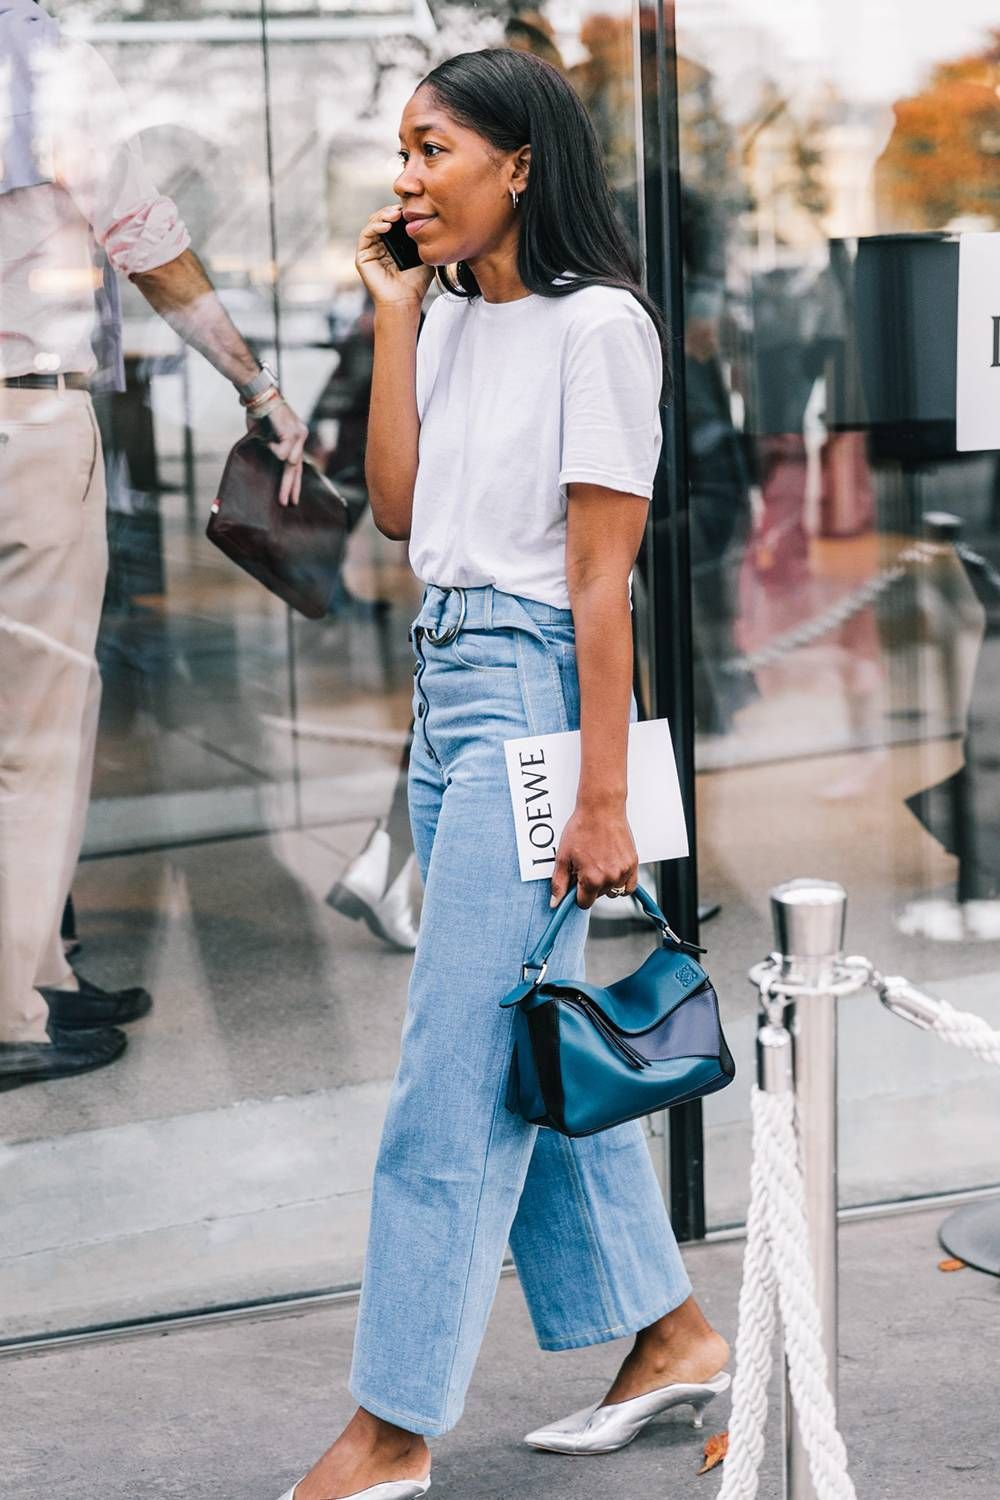 easy stylish spring look summer outfit idea — collage vintage street style with a white t-shirt, belted jeans, silver mules